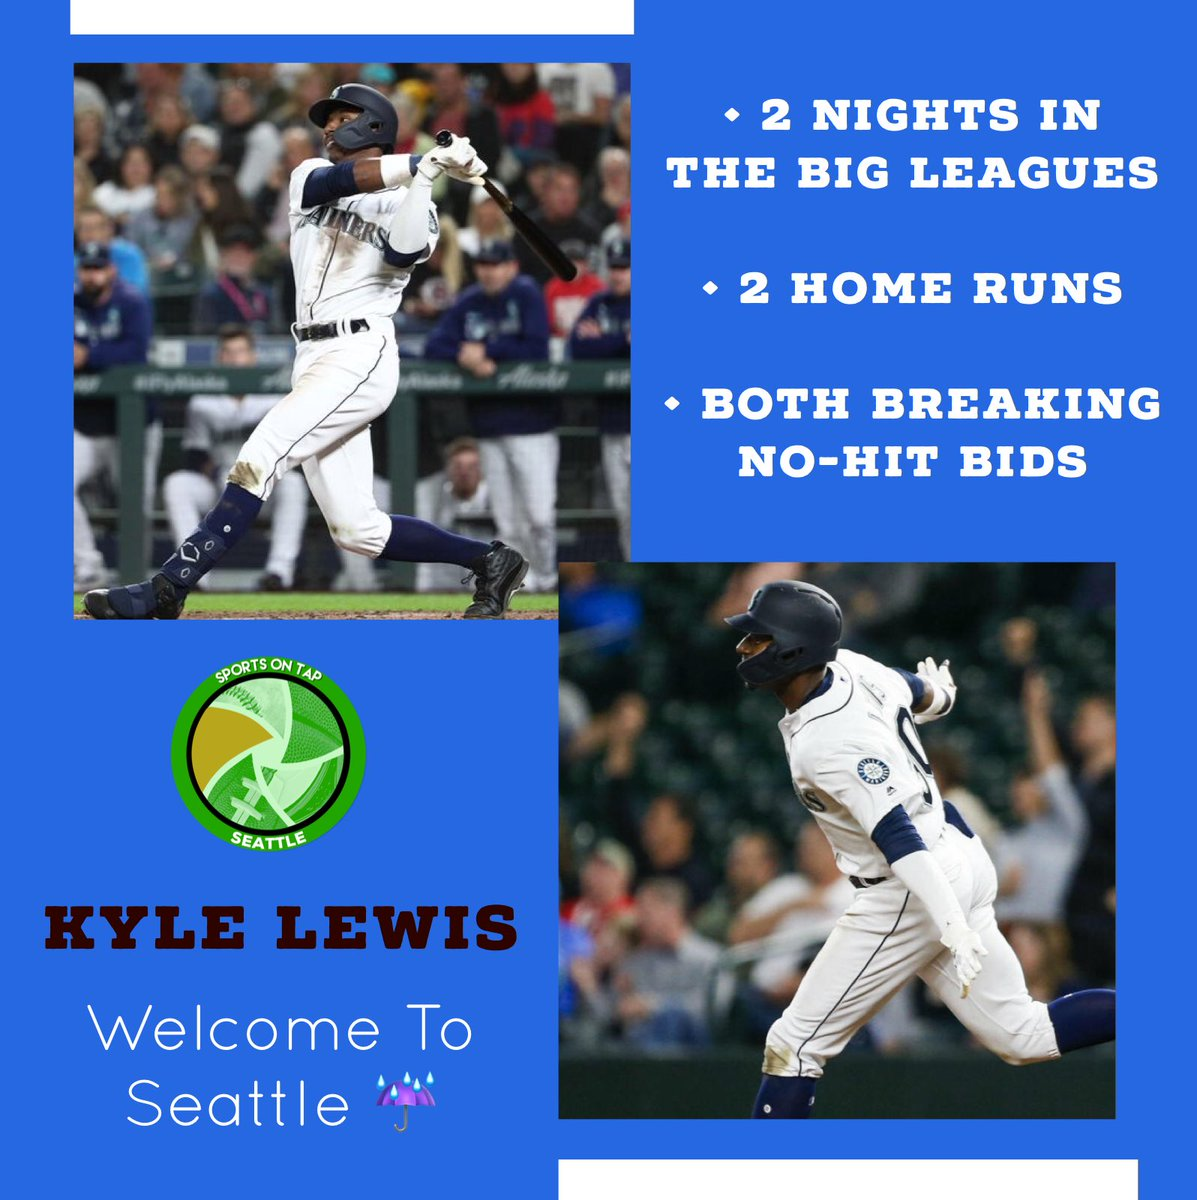 Kyle Lewis does it again for the Seattle Mariners 👏🏽 ☔️